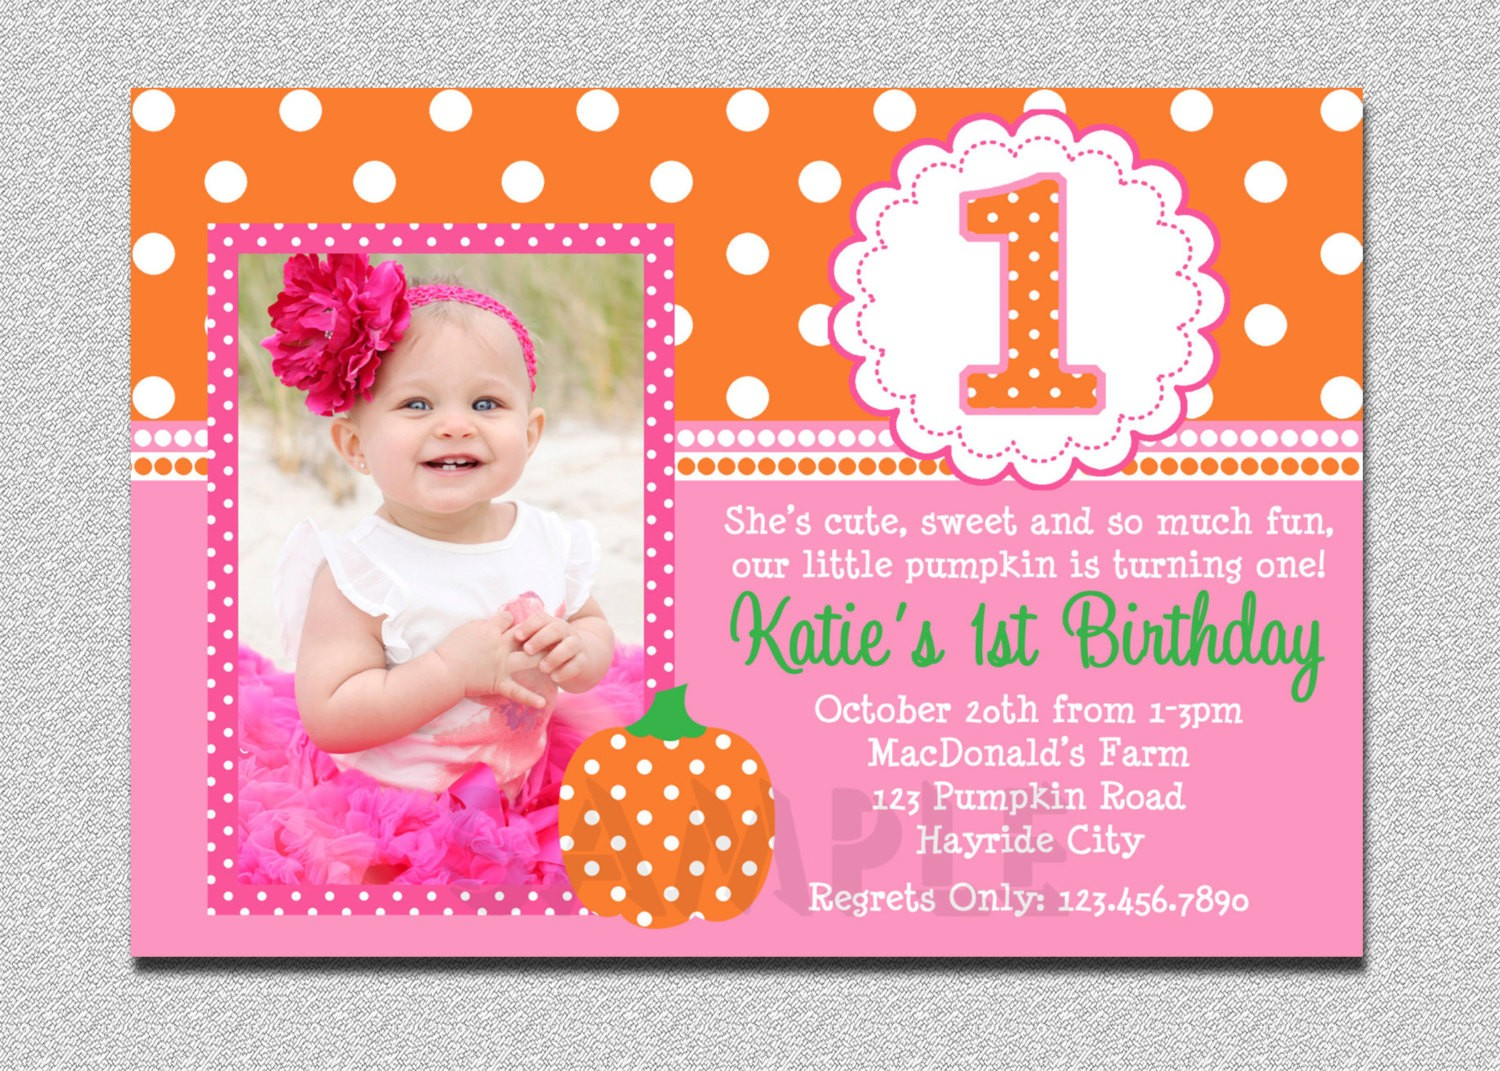 1 birthday invitation templates ; free-invitation-template-for-first-birthday-party-inspirationalnew-1st-birthday-invitations-girl-free-invitations-ideas